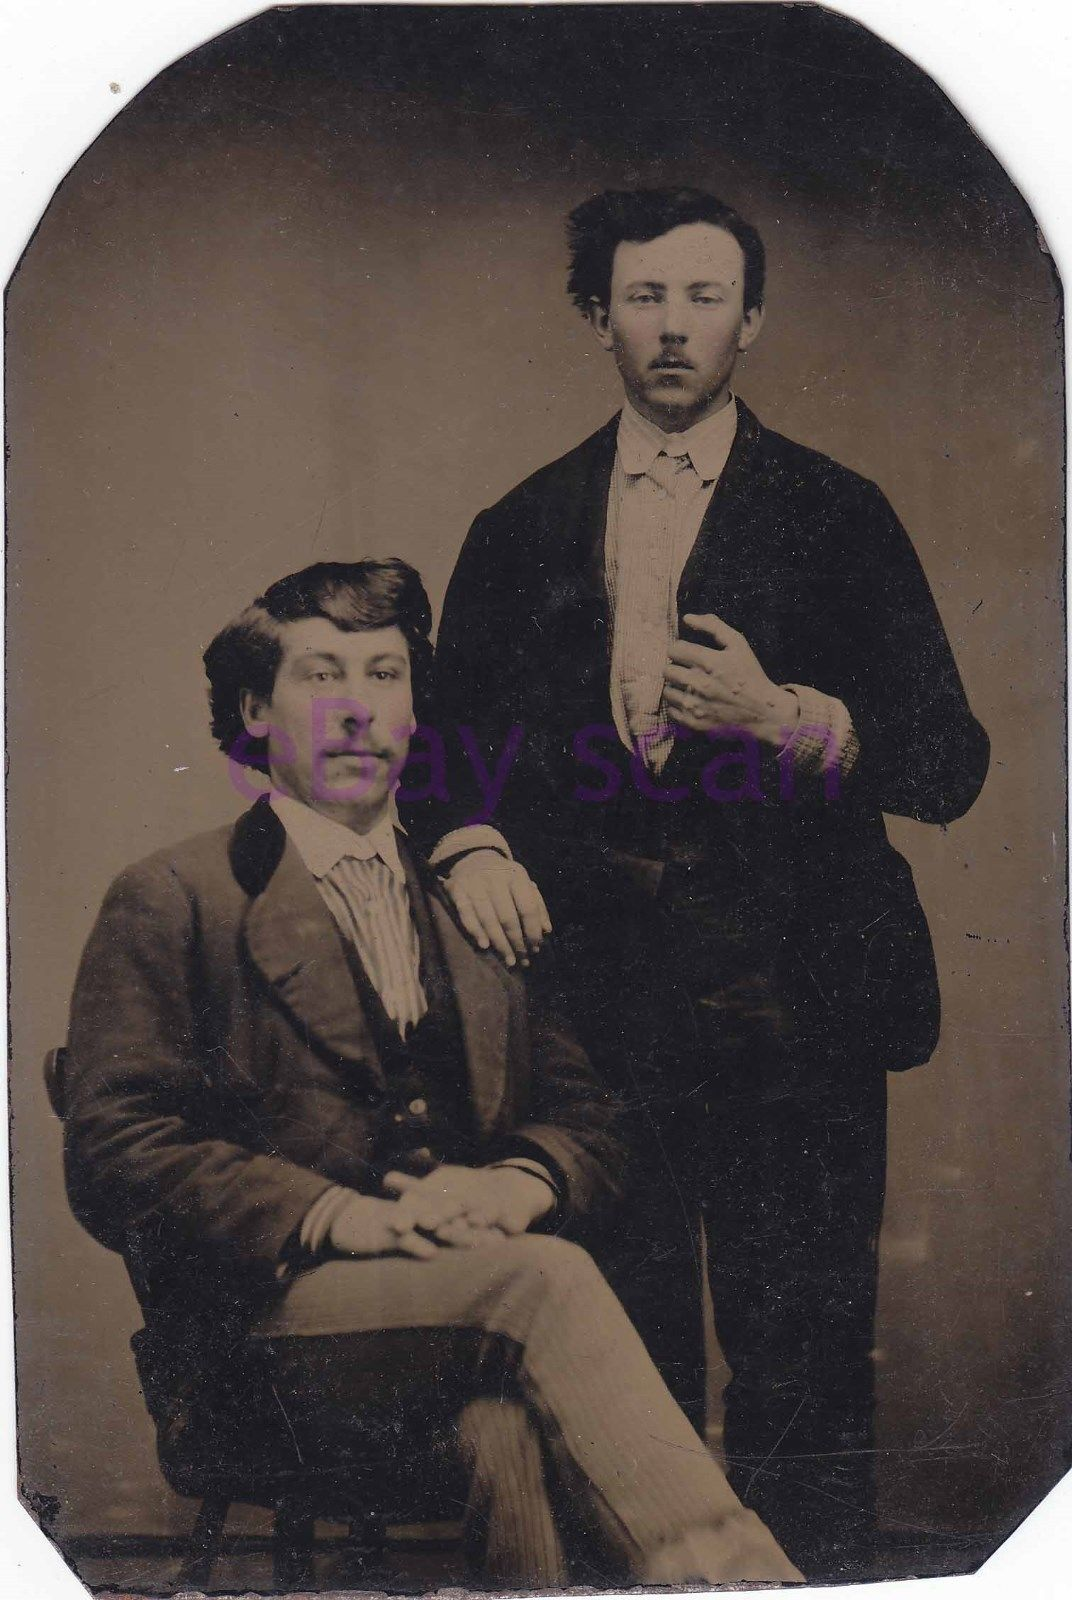 Antique TINTYPE/Ferrotype Handsome Young Men/Couple #279 Vintage Photograph